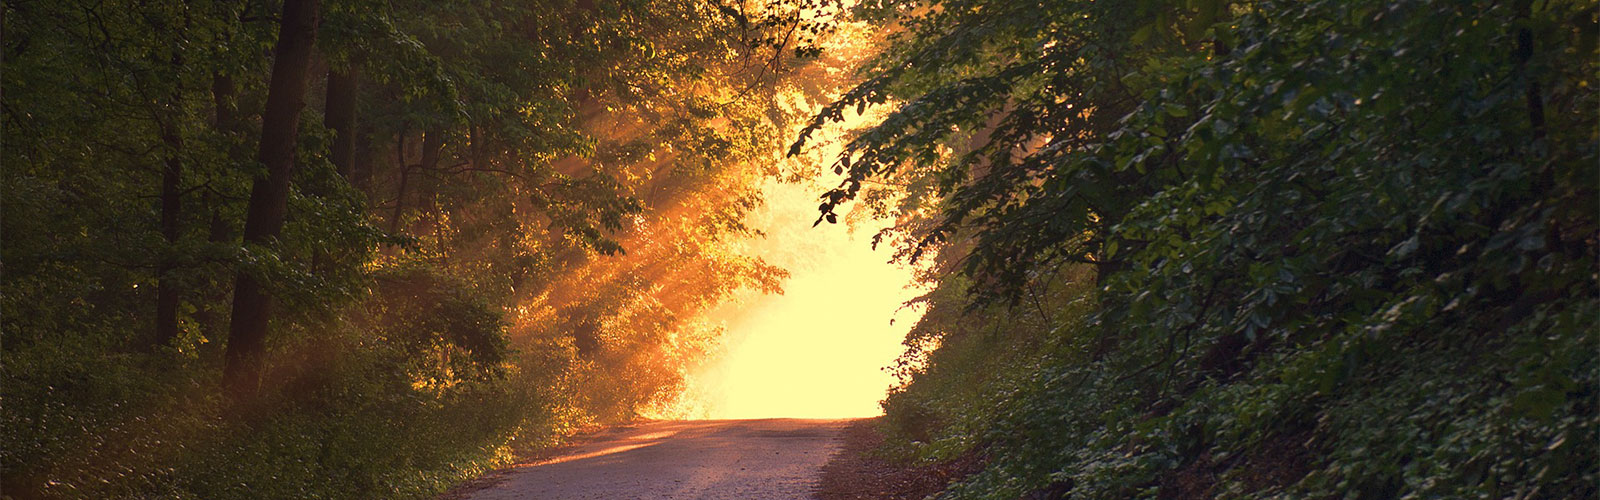 Discernment: Are You On The Right Path?